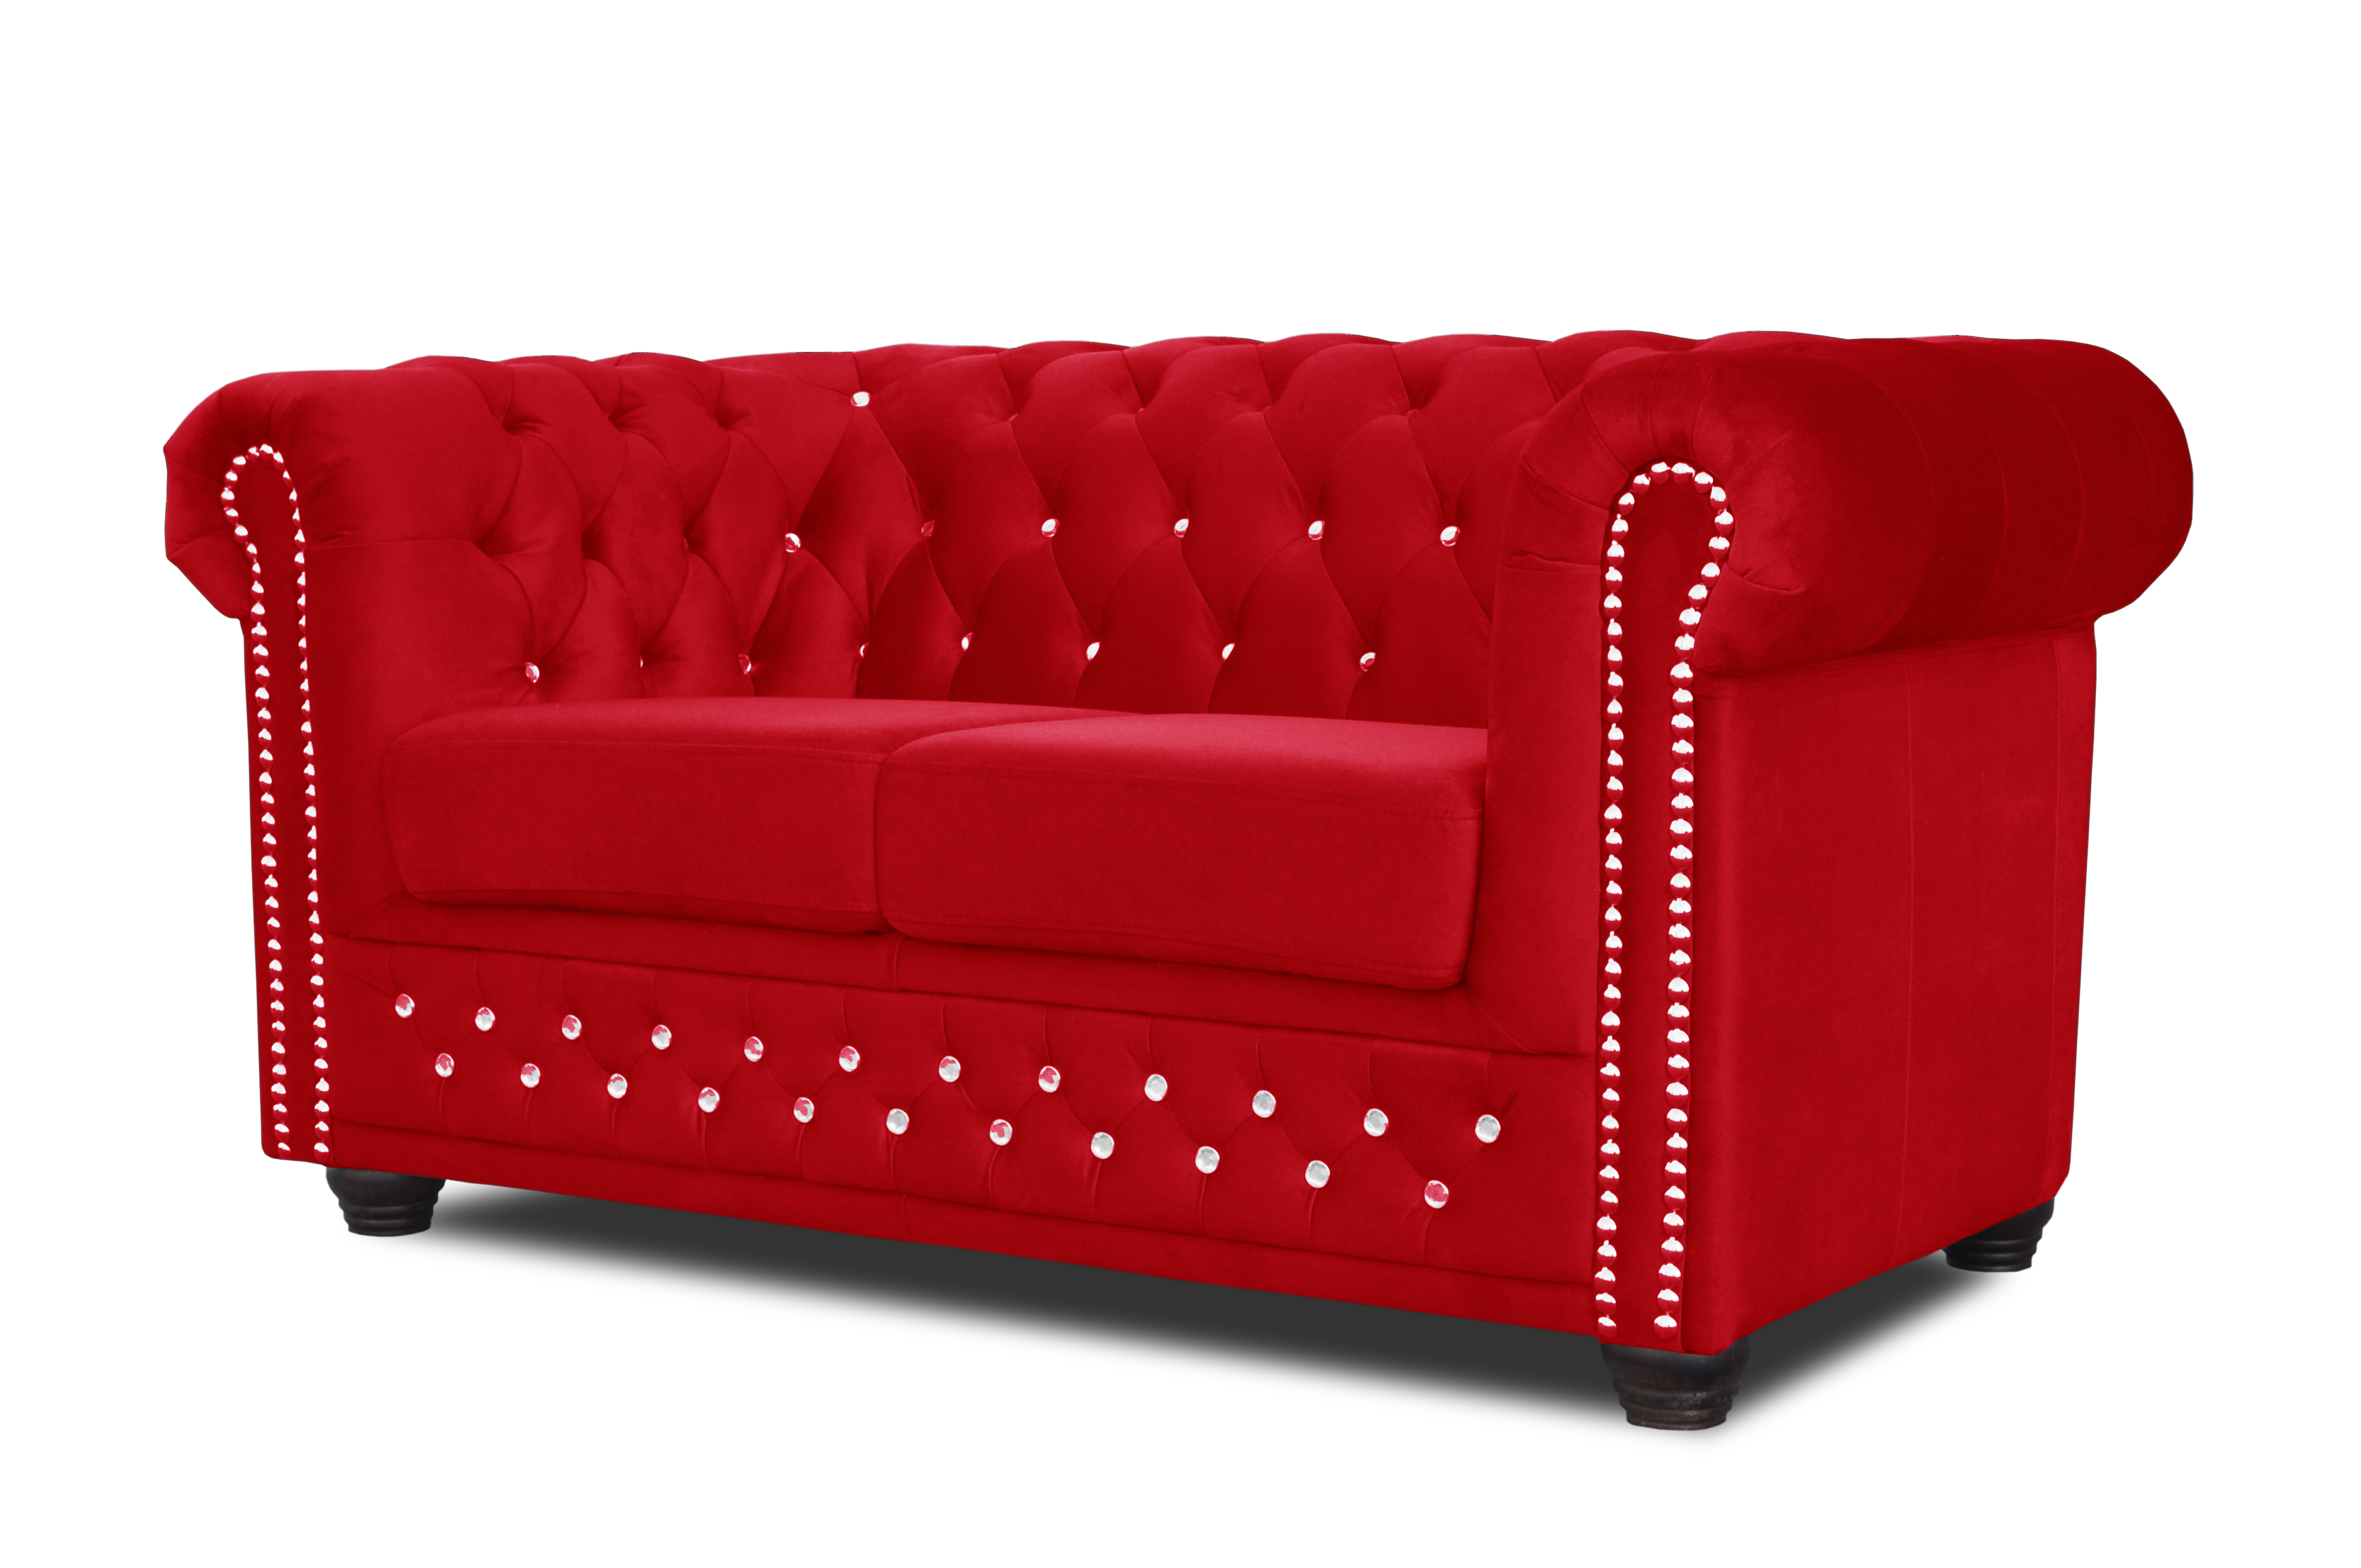 Chesterfield Sofa Rot Chesterfield Sofa Rot Chesterfield Sofa Rot Leder